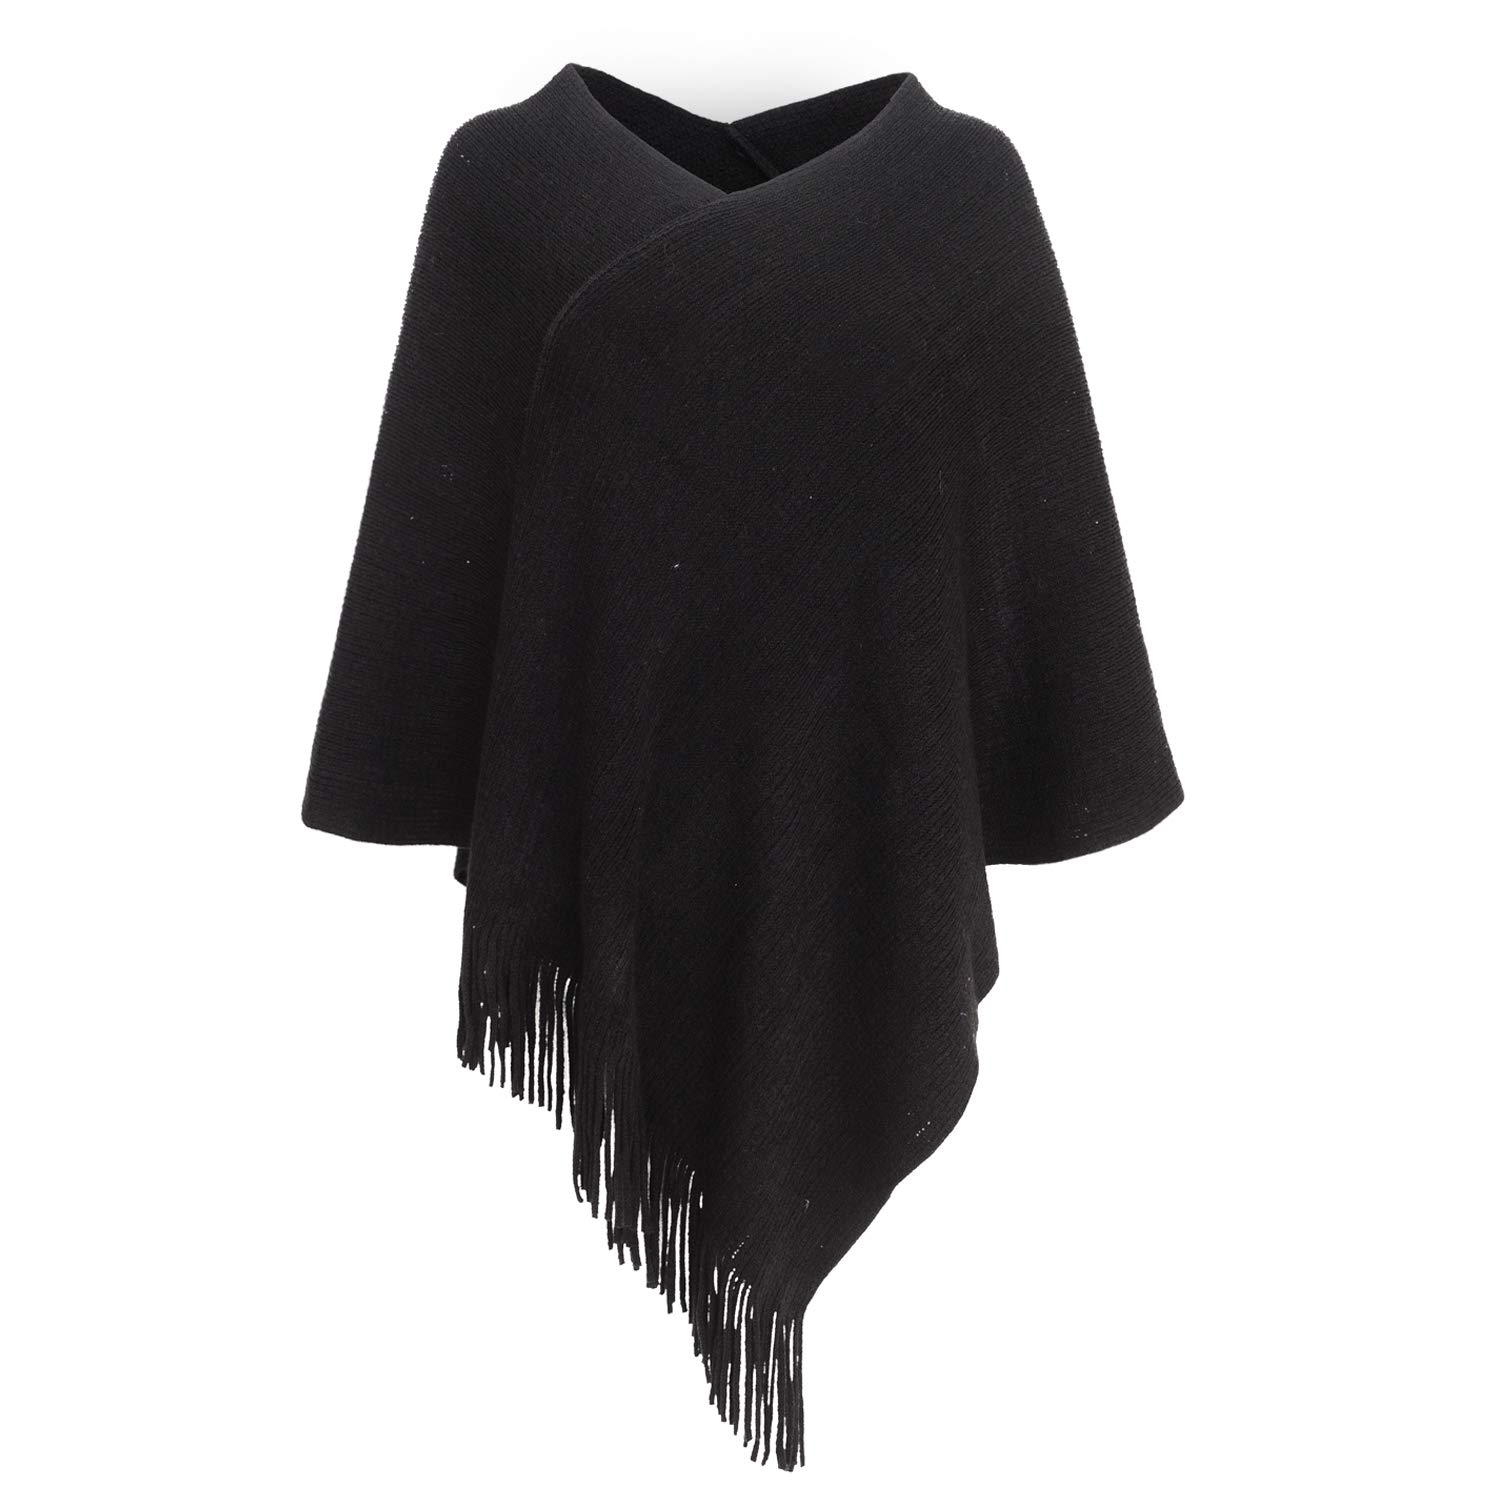 e49586d057960 Womens Poncho Sweater V Neck Knitted Pullover Shawls Wraps Capes with  Fringes Gifts for Women Mom at Amazon Women's Clothing store: